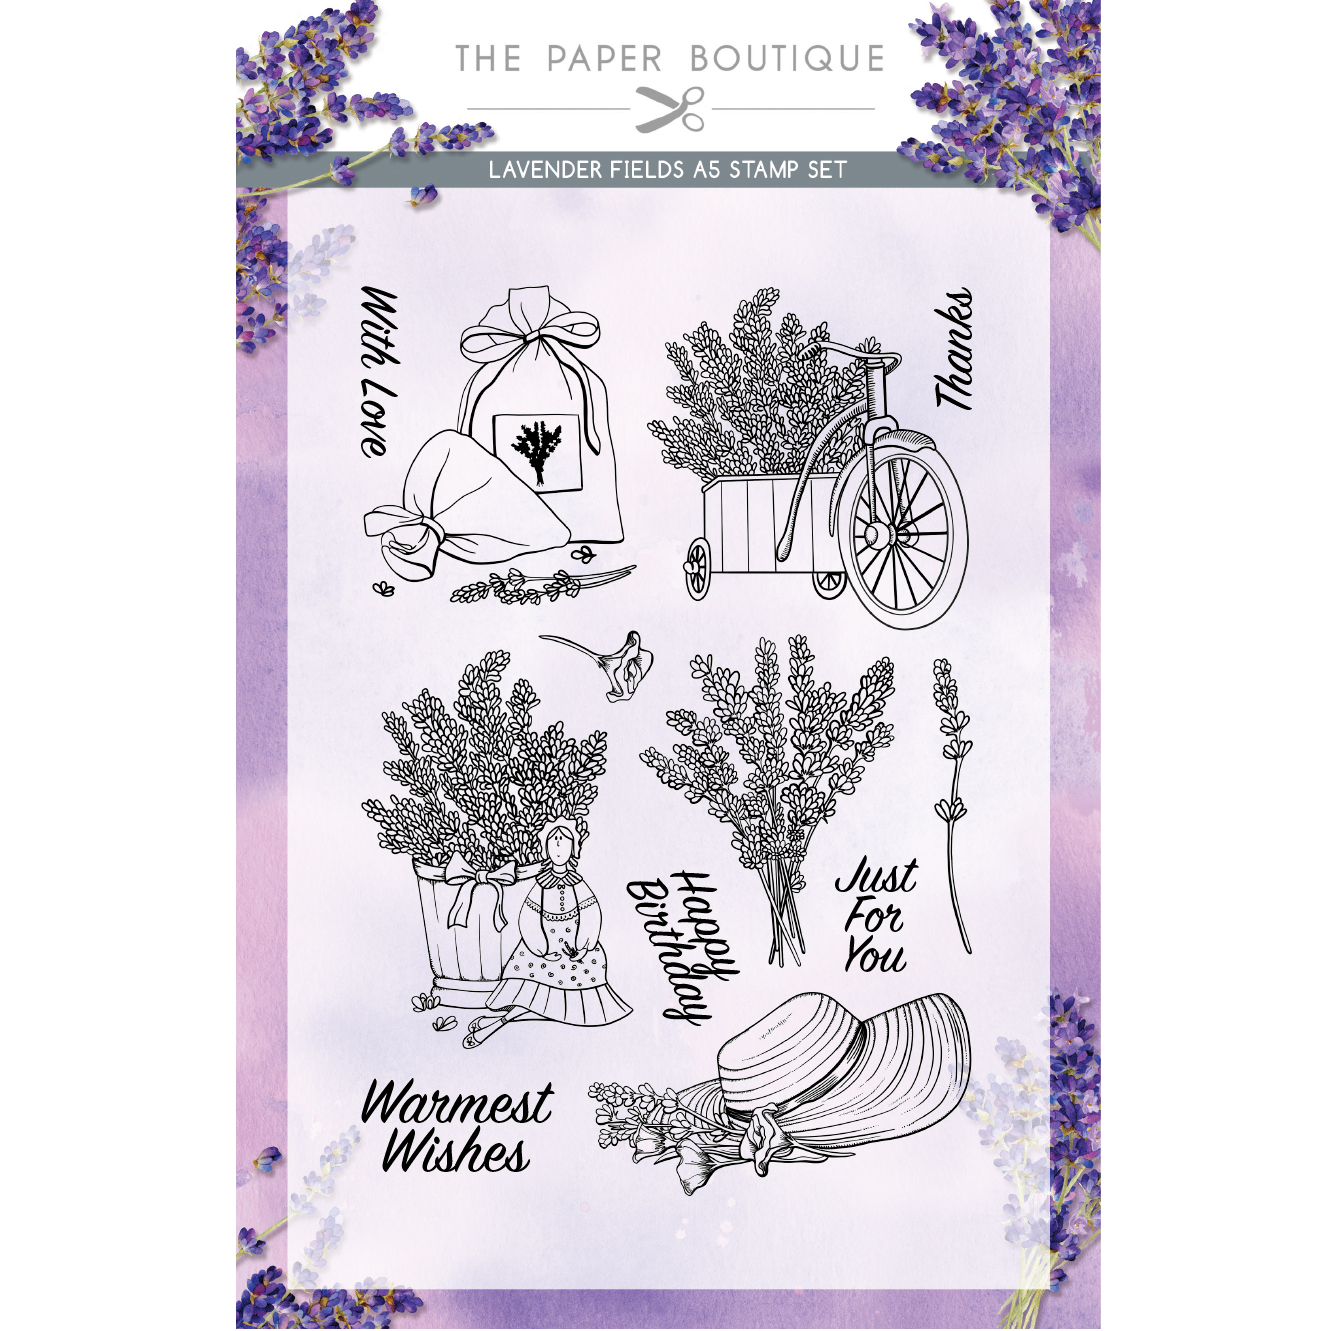 The Paper Boutique Lavender Fields A5 Stamp Set